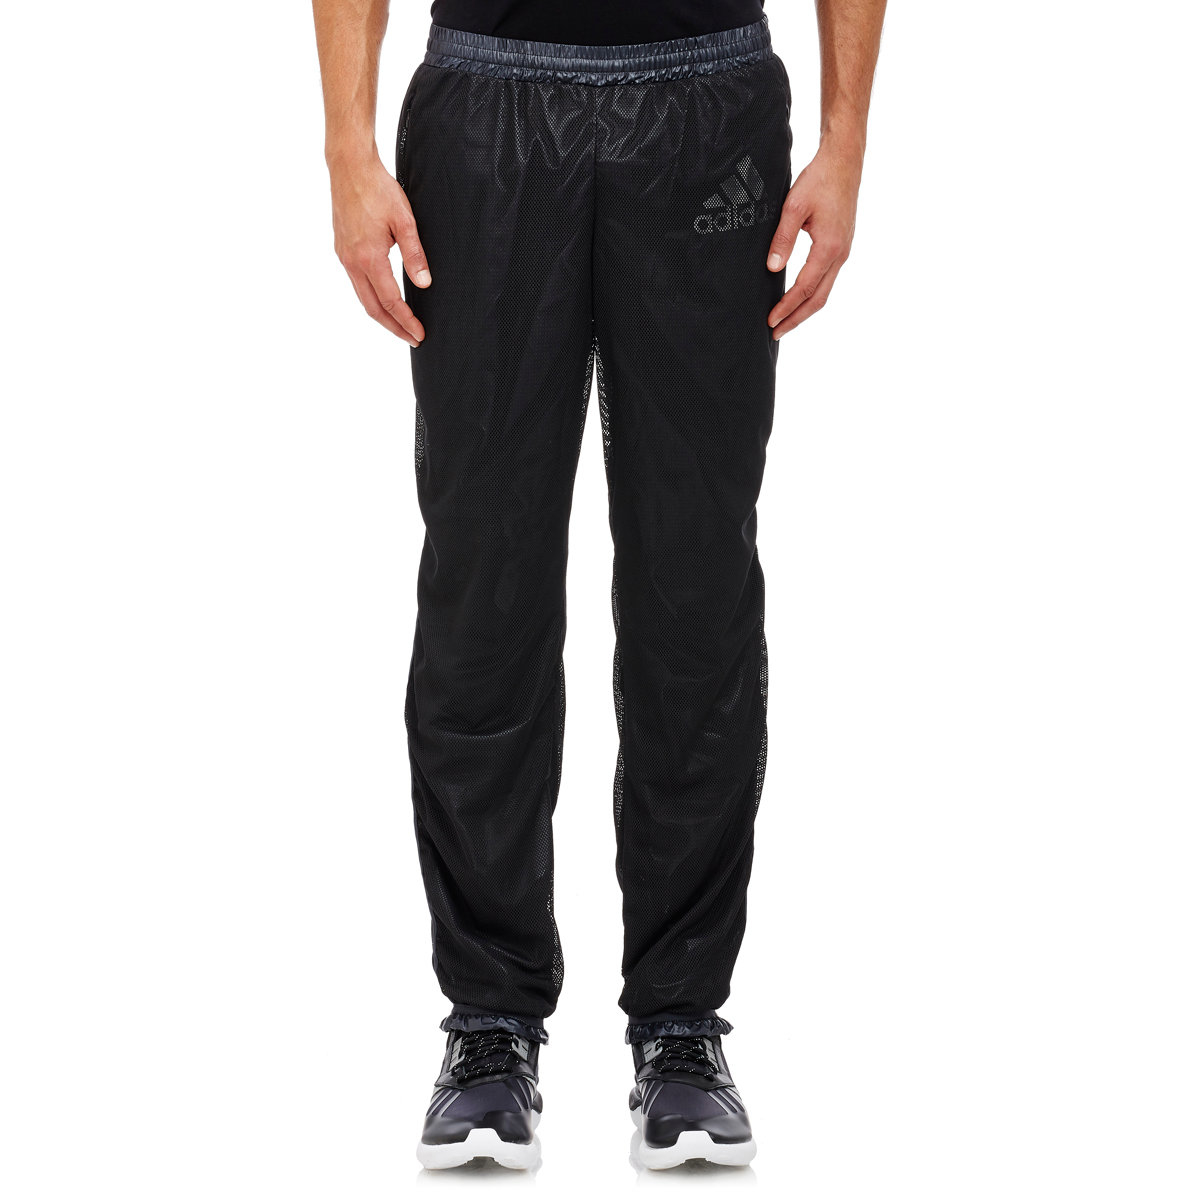 cuttackfirstboutique.cf's men's tall sweatpants and tall athletic pants are specifically designed for taller men, assuring you get a perfect fit every time.